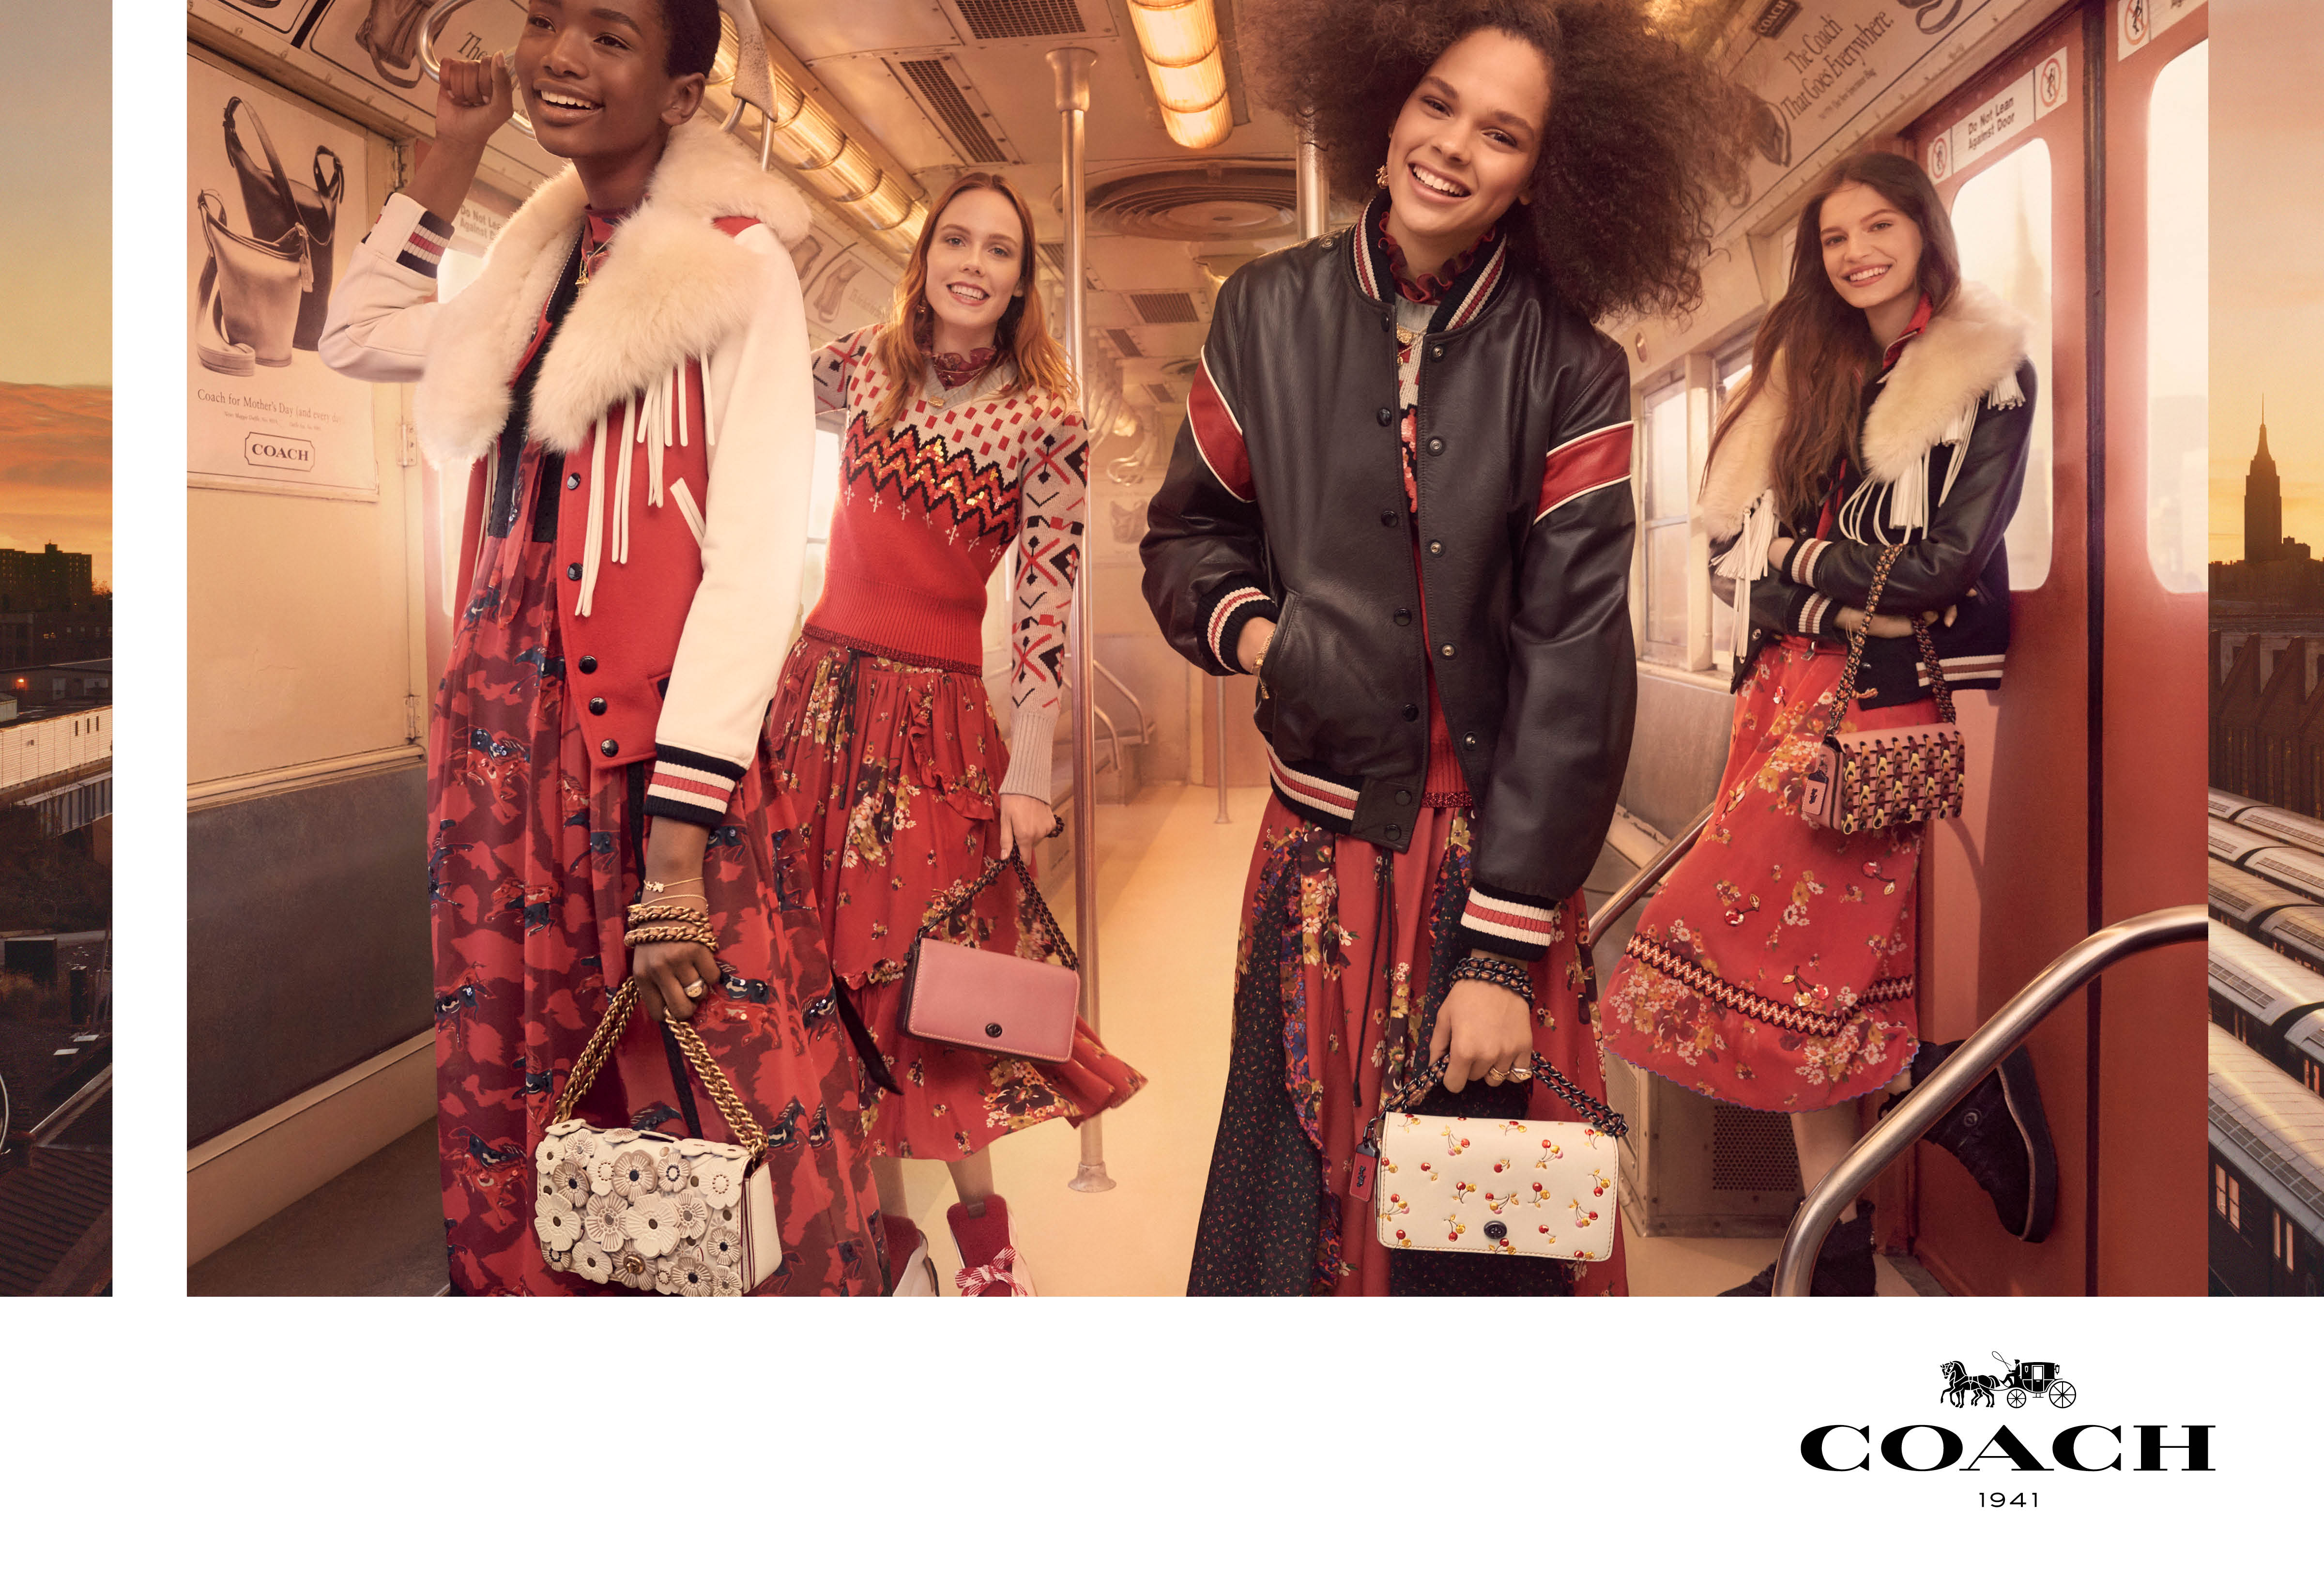 170614_COACH_FW17_FASHION_LAYOUTS9